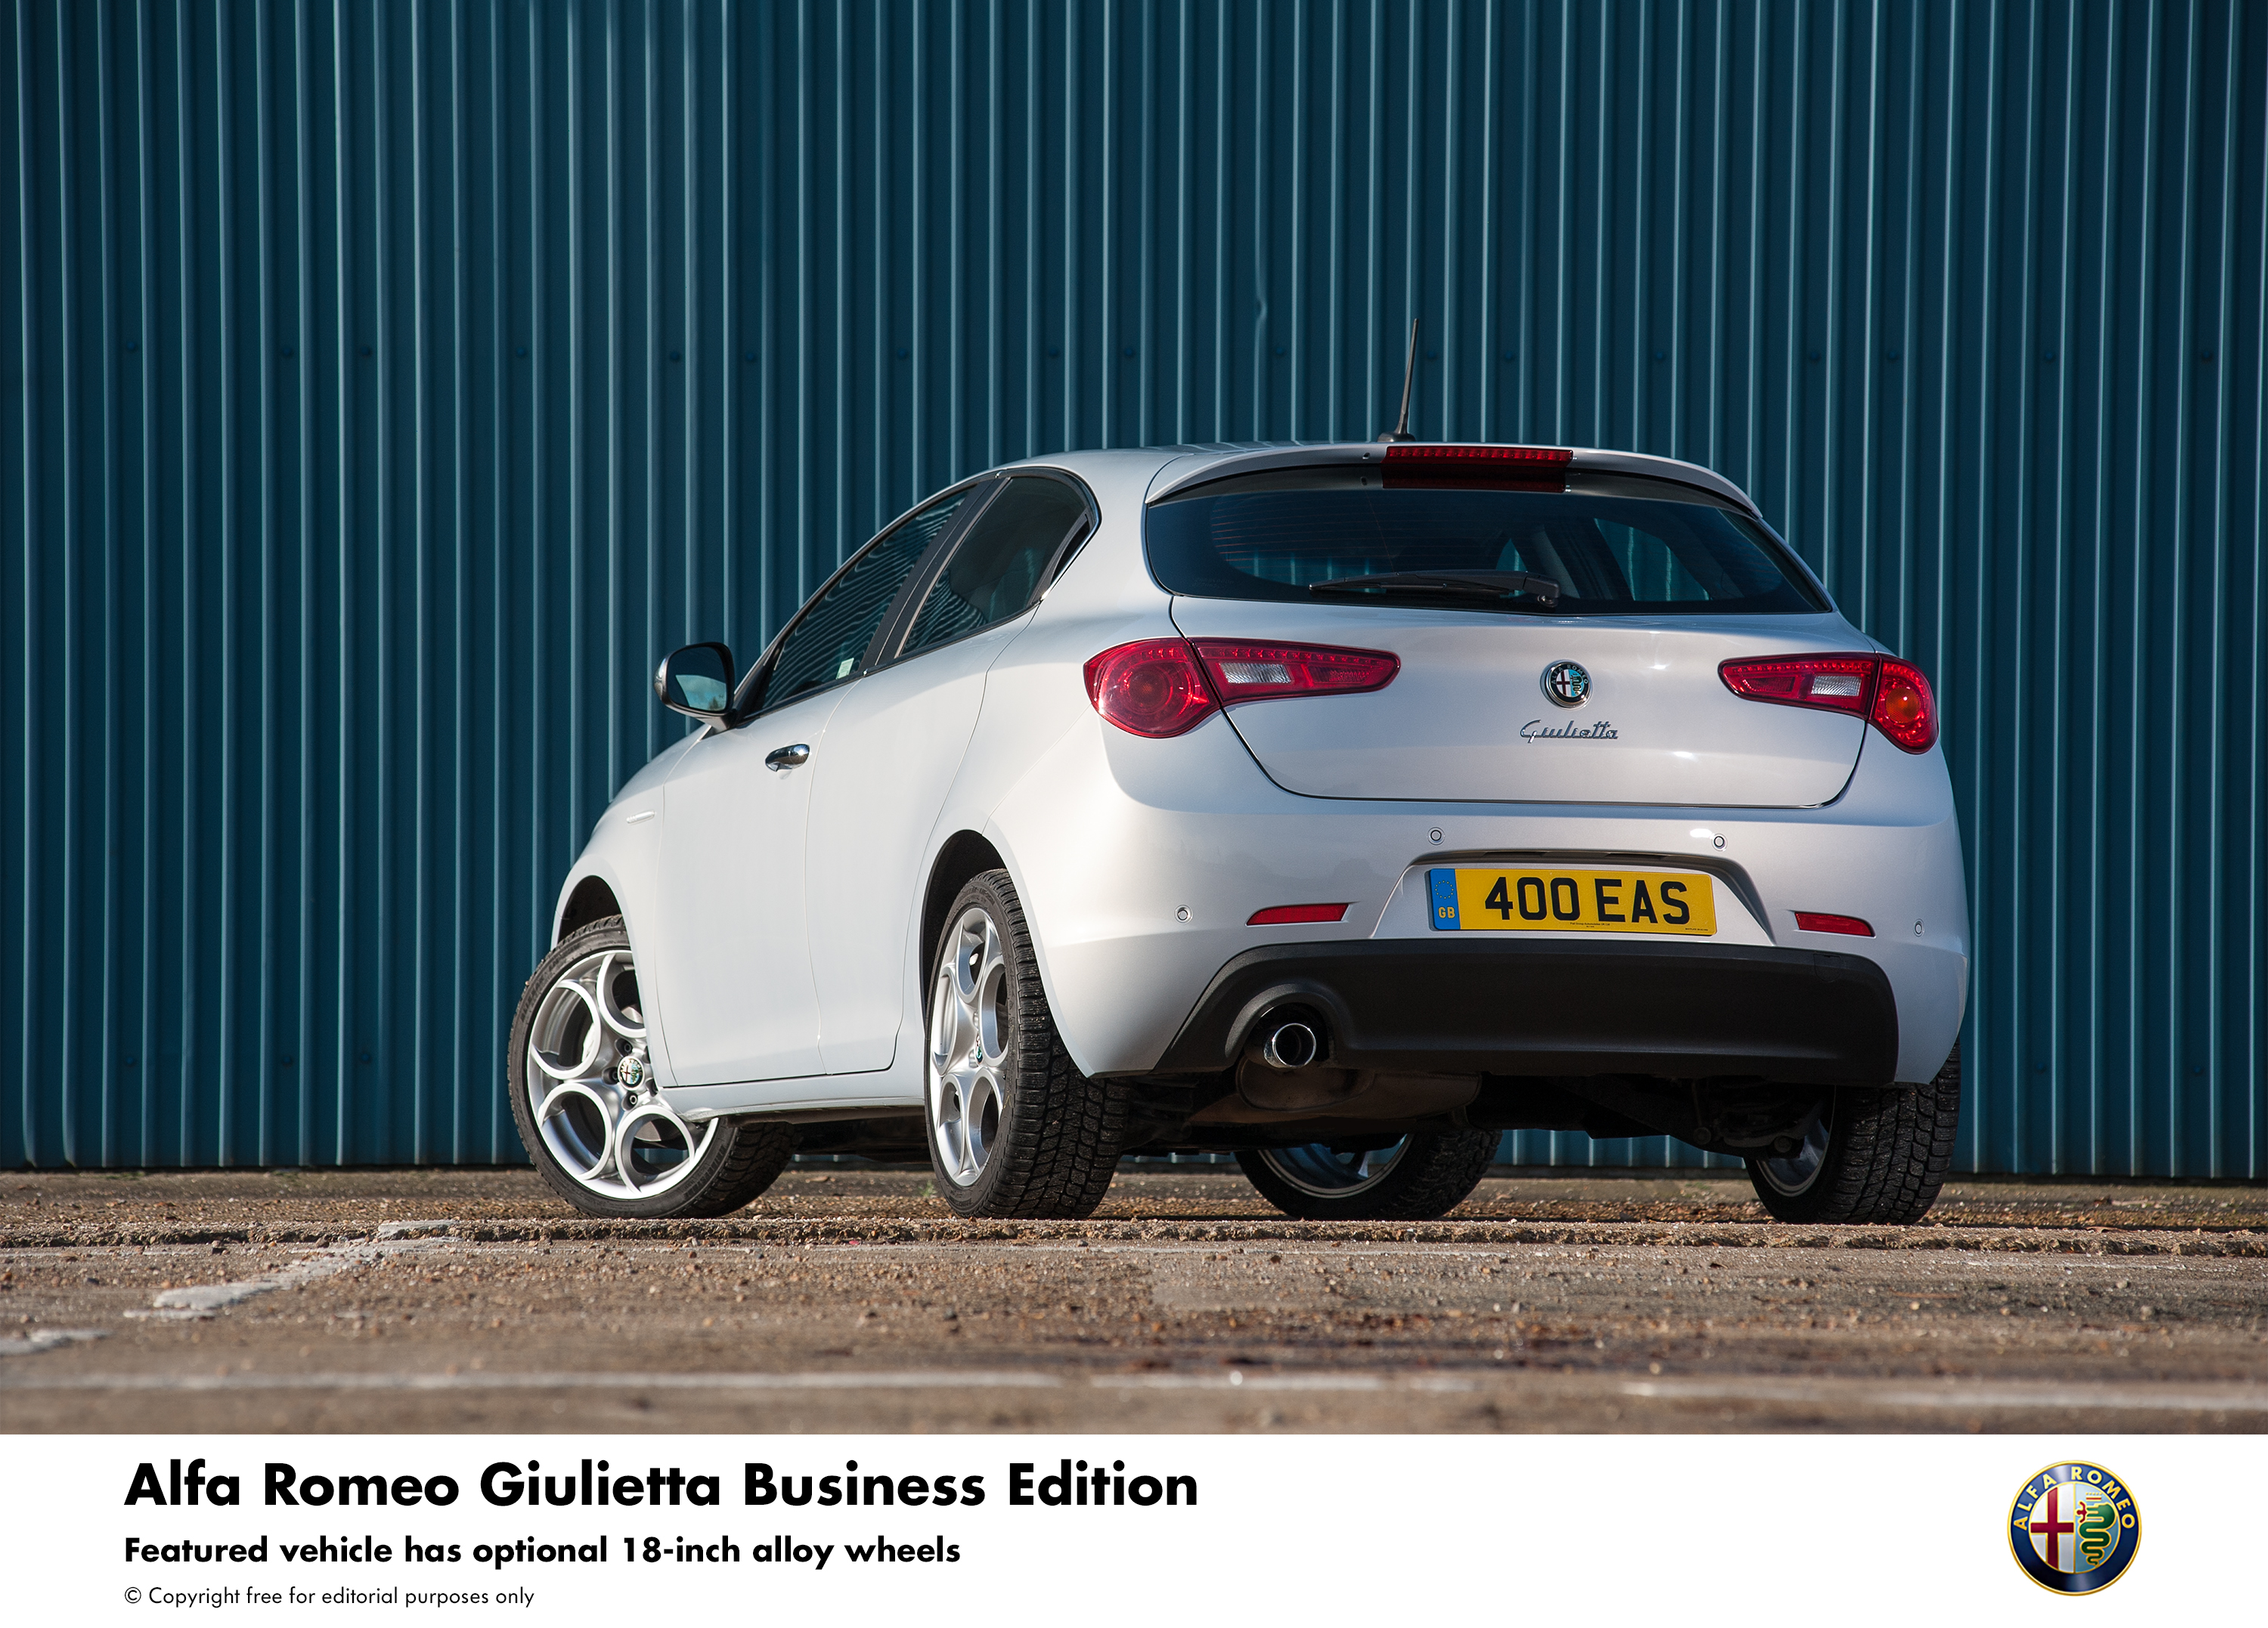 new alfa romeo giulietta business edition launched in the uk press fiat group automobiles press. Black Bedroom Furniture Sets. Home Design Ideas